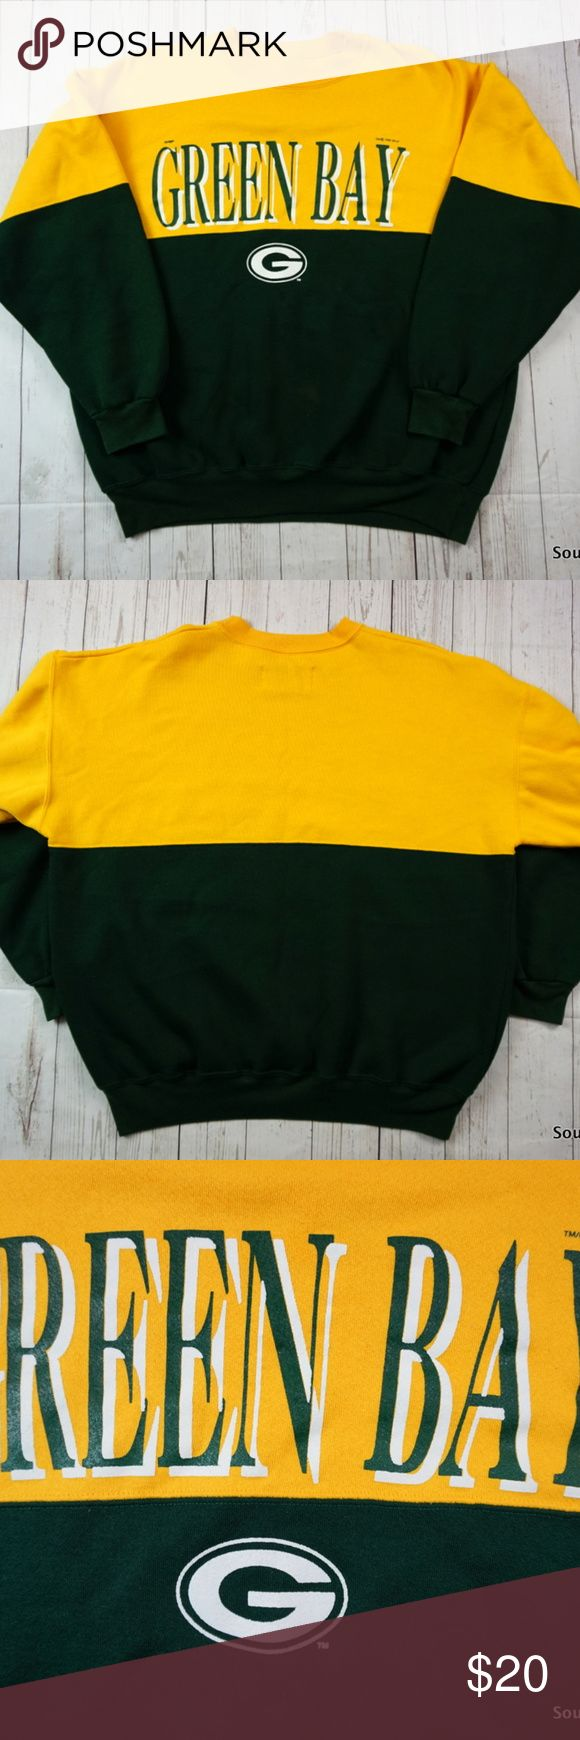 """90s Green Bay Packers Sweatshirt, Men's XL Vintage 90s Green Bay Packers Sweatshirt, Men's XL, Extra Large, Dodger, Wisconsin, NFL Football Sweatshirt, 90s Fashion, Packers Sweatshirt  Brand:      D Dodge Size:         Men's XL Color:       Green / Yellow  Material:   50% Cotton, 50% Polyester  Detailed Measurements: (Measured Laying Flat On Table)  Sleeves:                       22"""" inches Chest::                         25"""" inches Length:                         28"""" inches  Ships in 24 hrs…"""